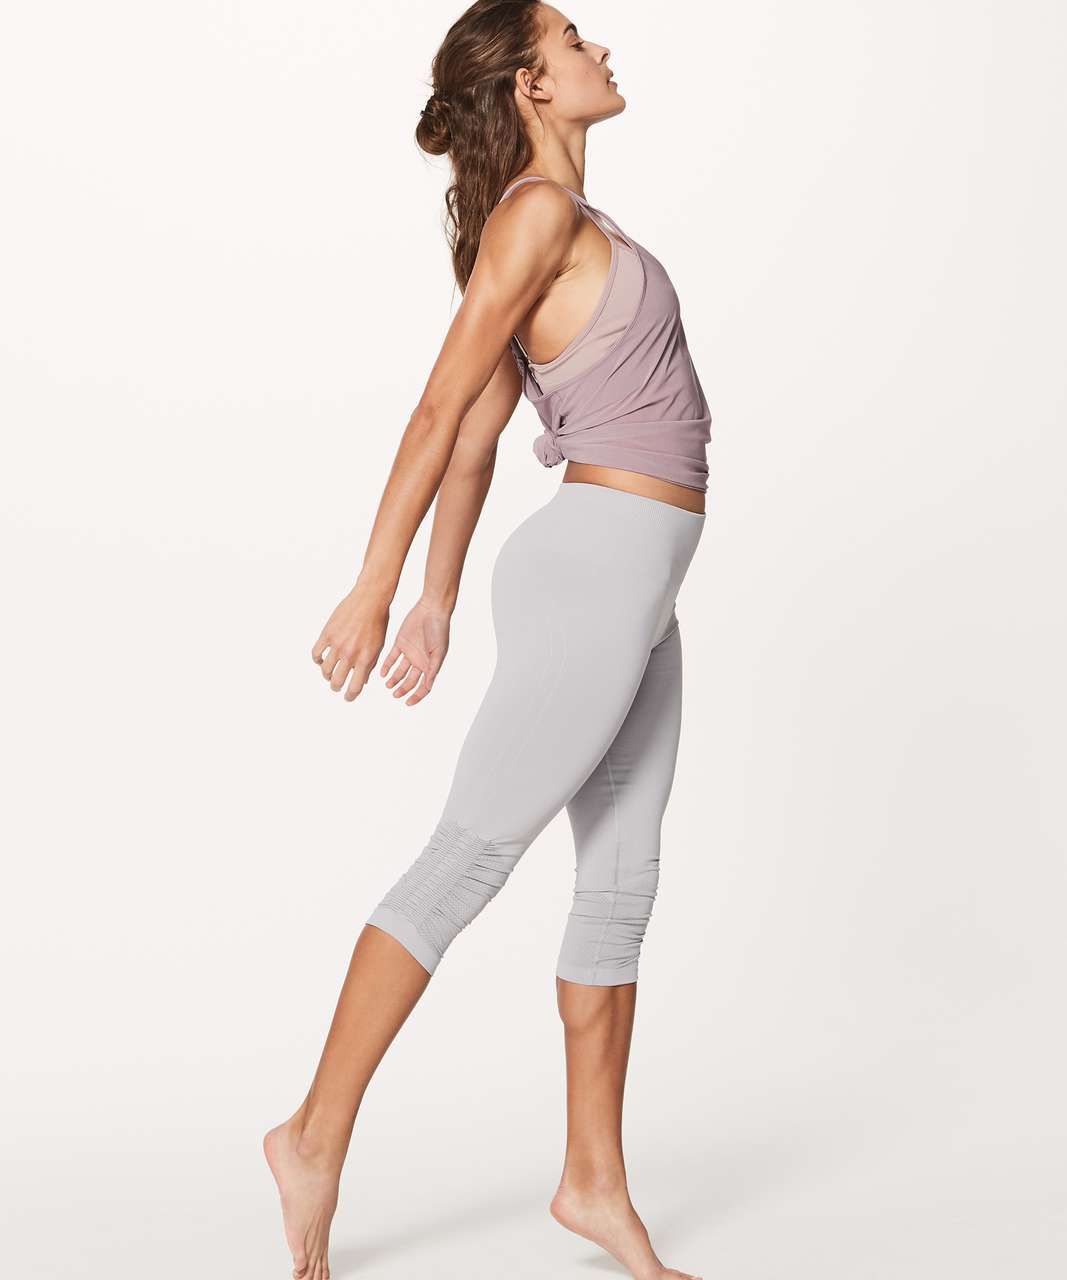 Lululemon Awakening Tank Taryn Toomey Collection - Misty Mauve